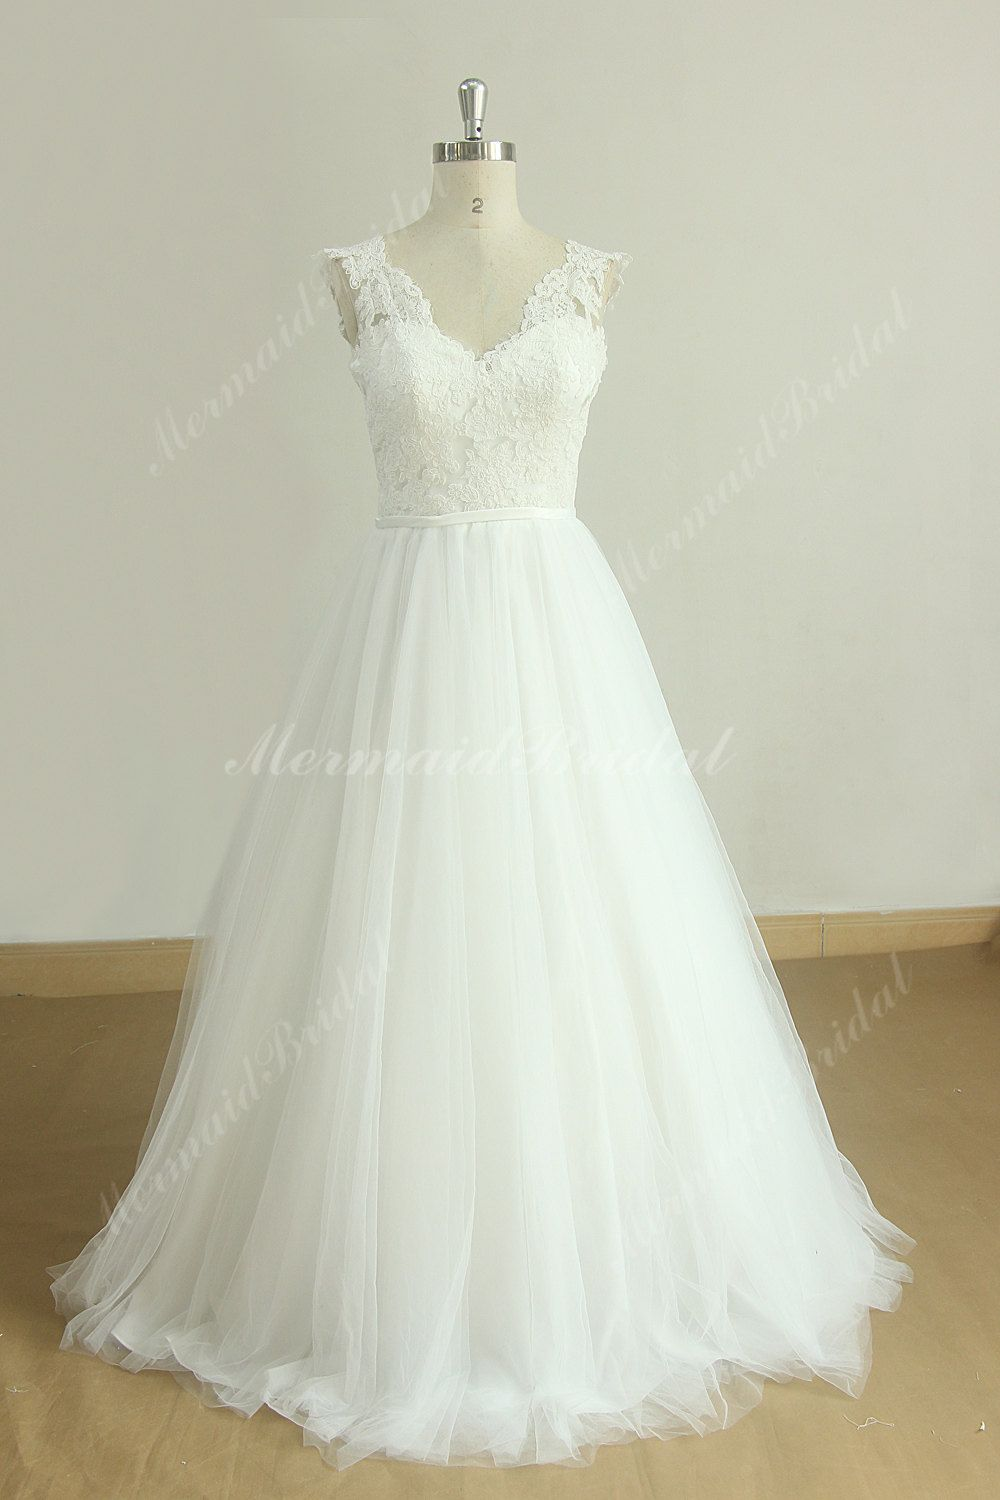 High quality flowy vintage tulle lace wedding dress with deep v